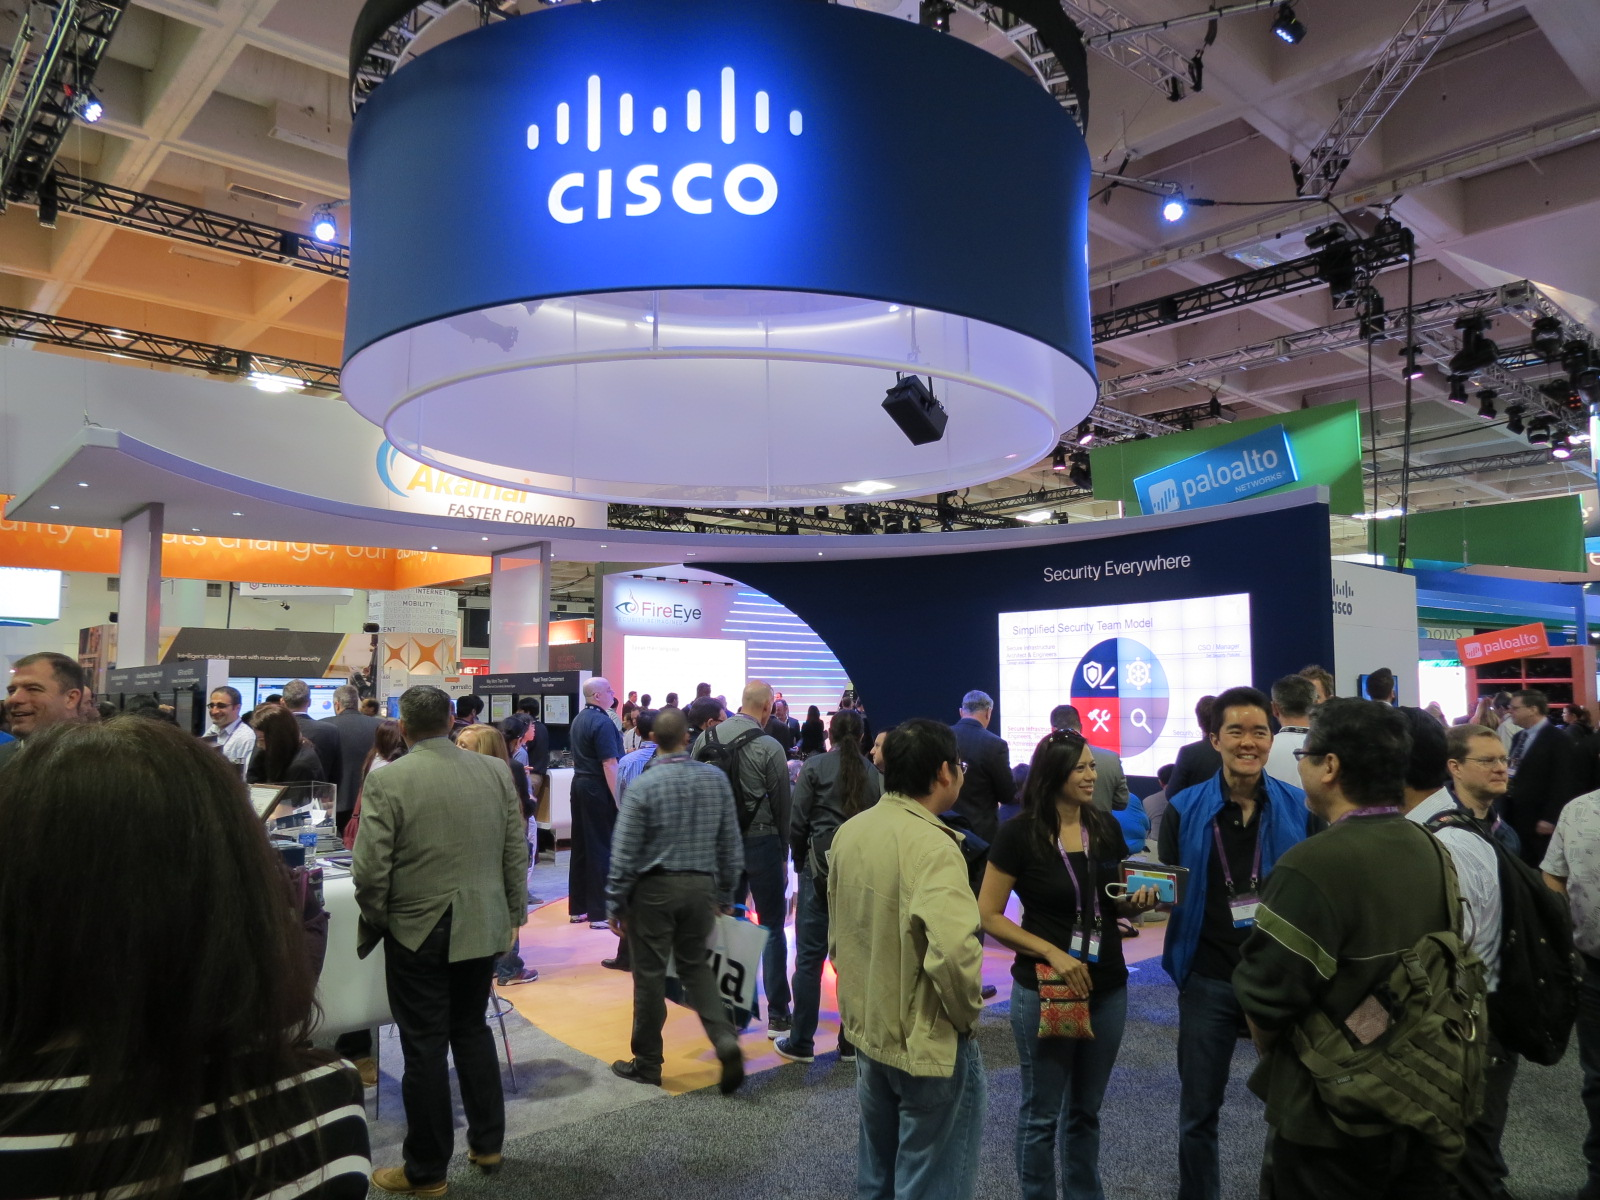 Cisco Security at Work: Threatwall at Mobile World Congress 2019